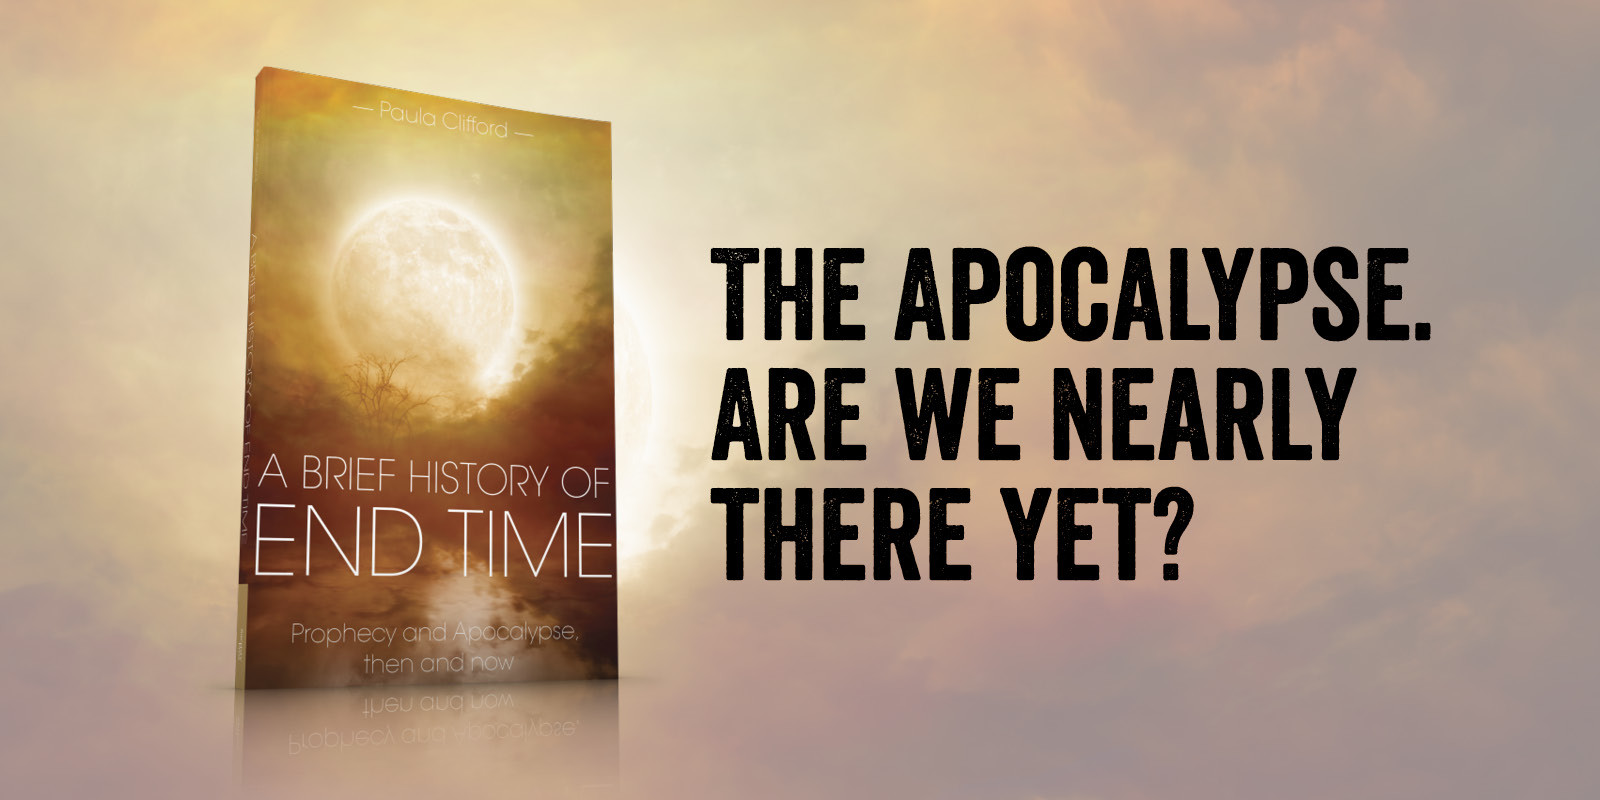 A Brief History of End Time: Prophecy and Apocalypse, then and now